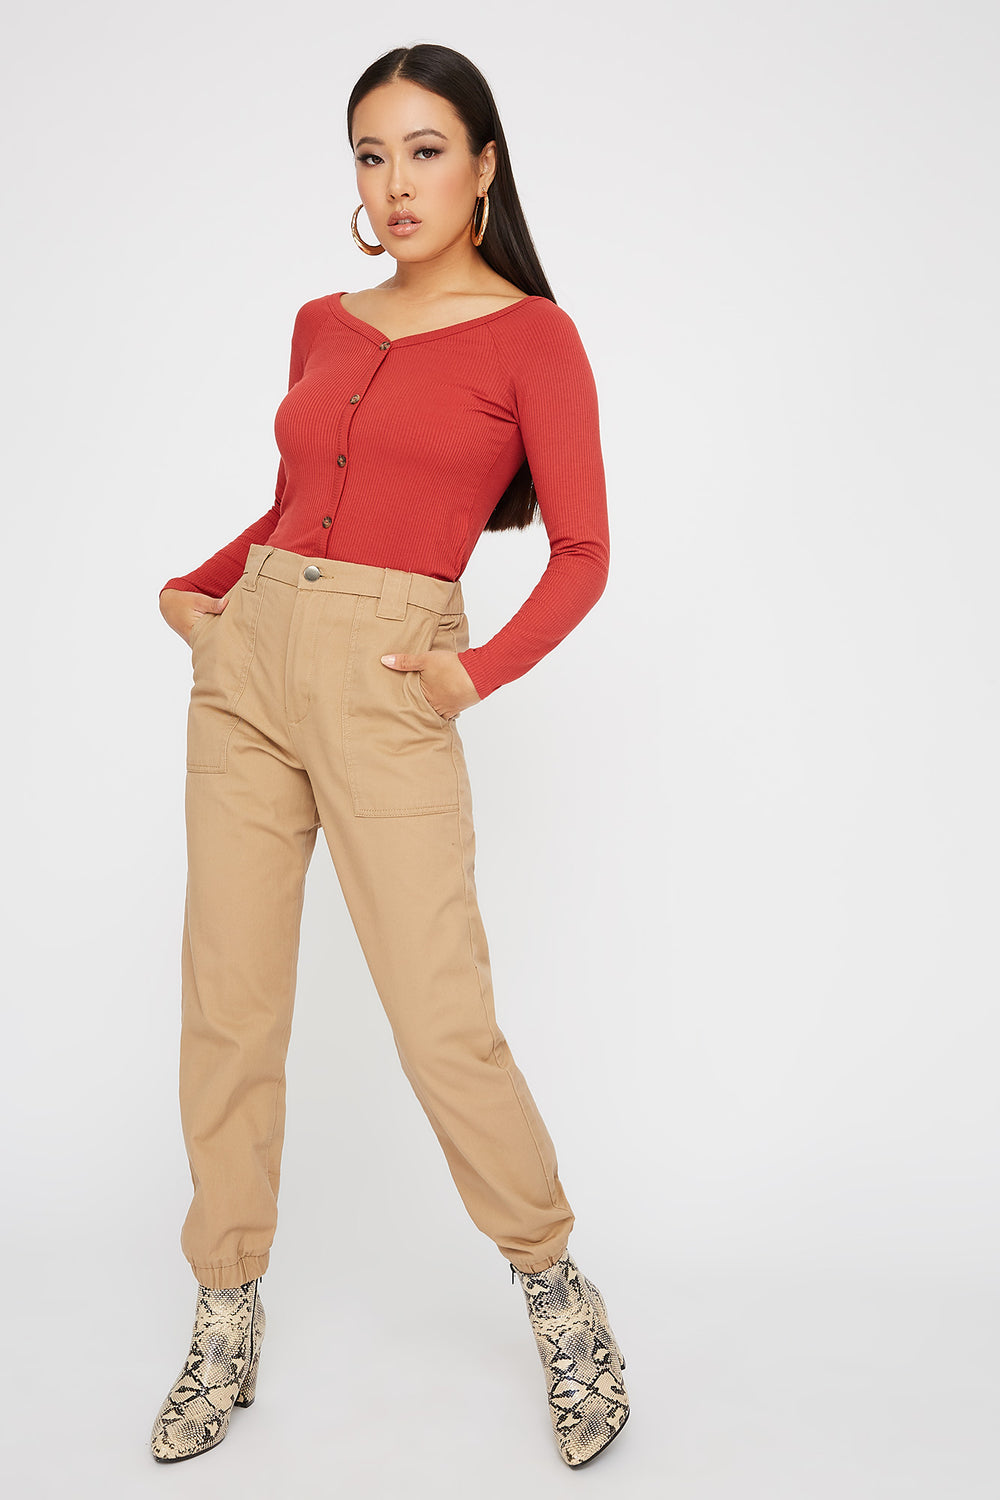 Knit Button Cropped Long Sleeve Rust